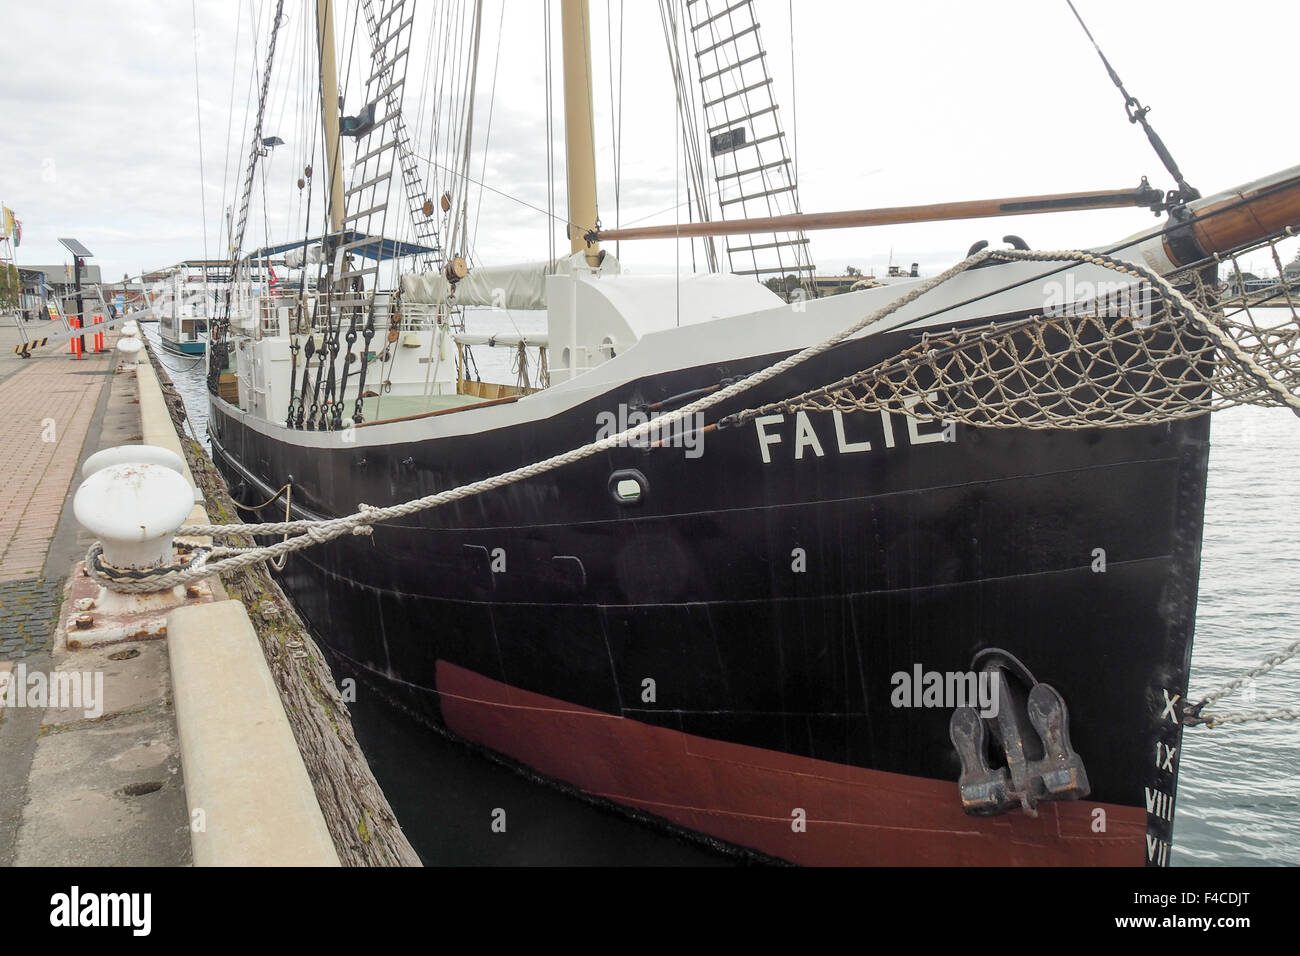 Falie, a ketch berthed at Port Adelaide. - Stock Image